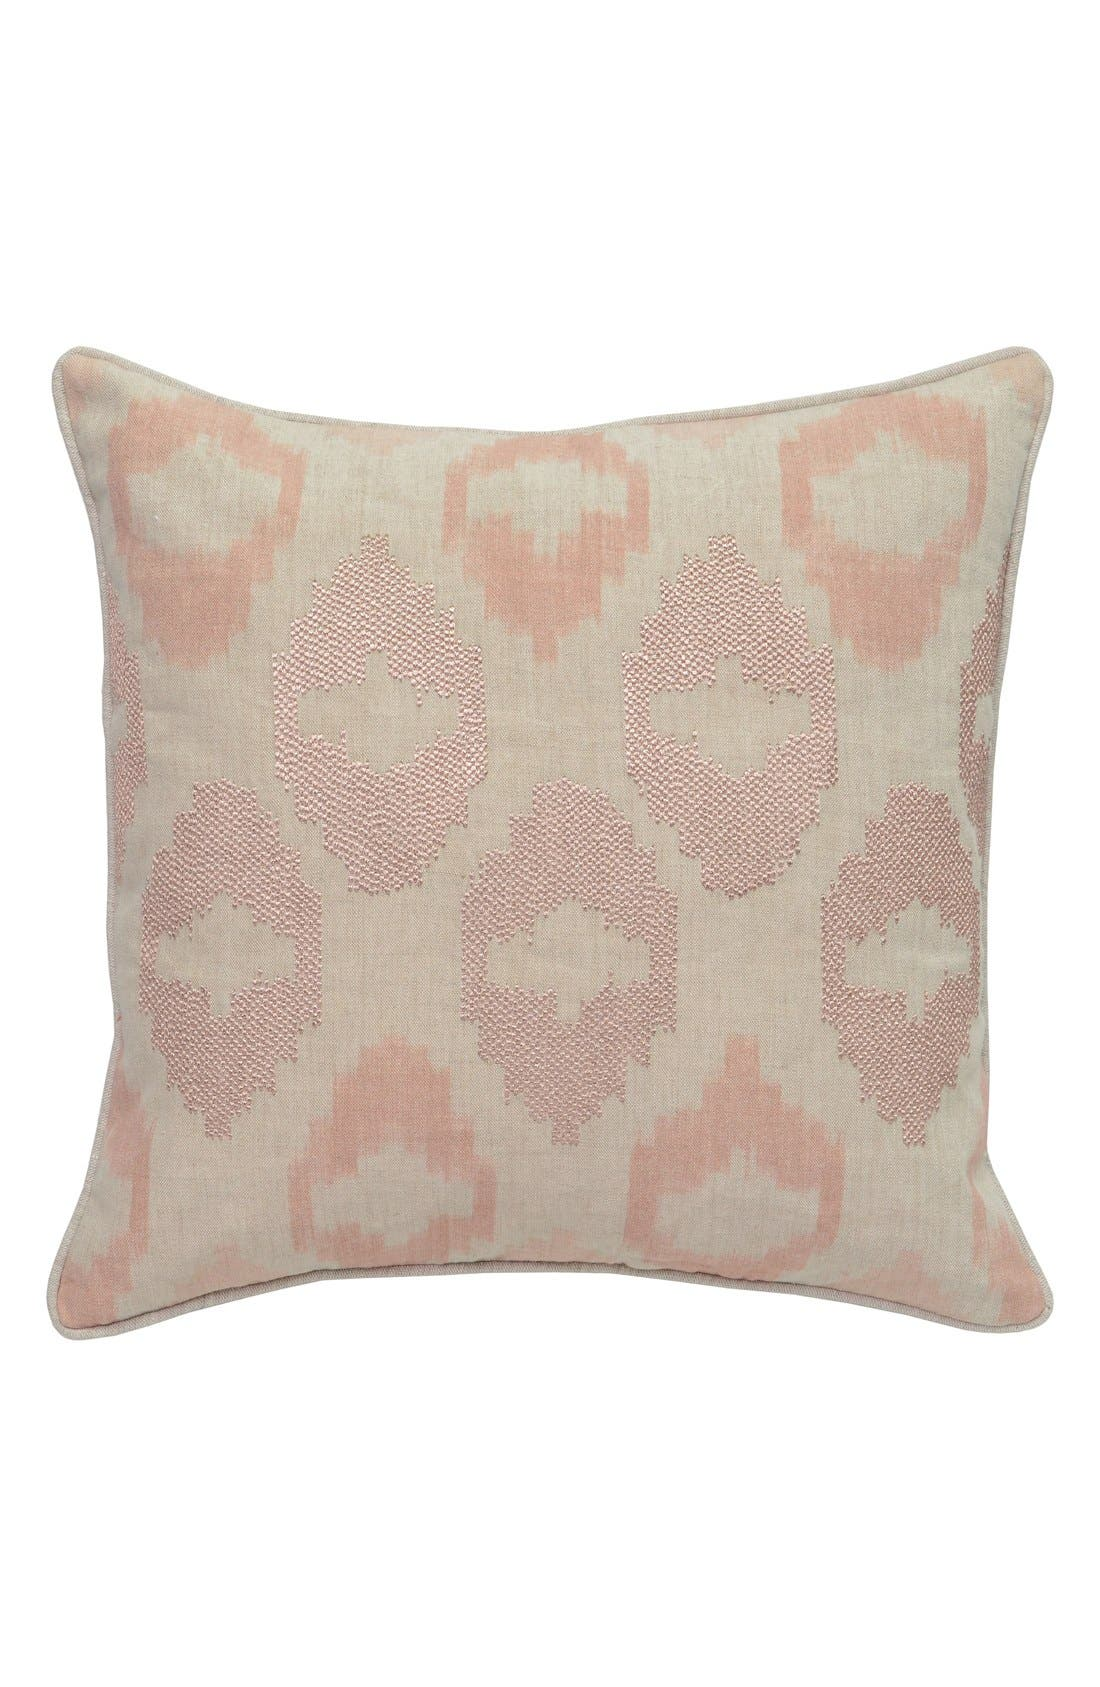 Mira Accent Pillow,                             Main thumbnail 1, color,                             BEIGE/ BLUSH